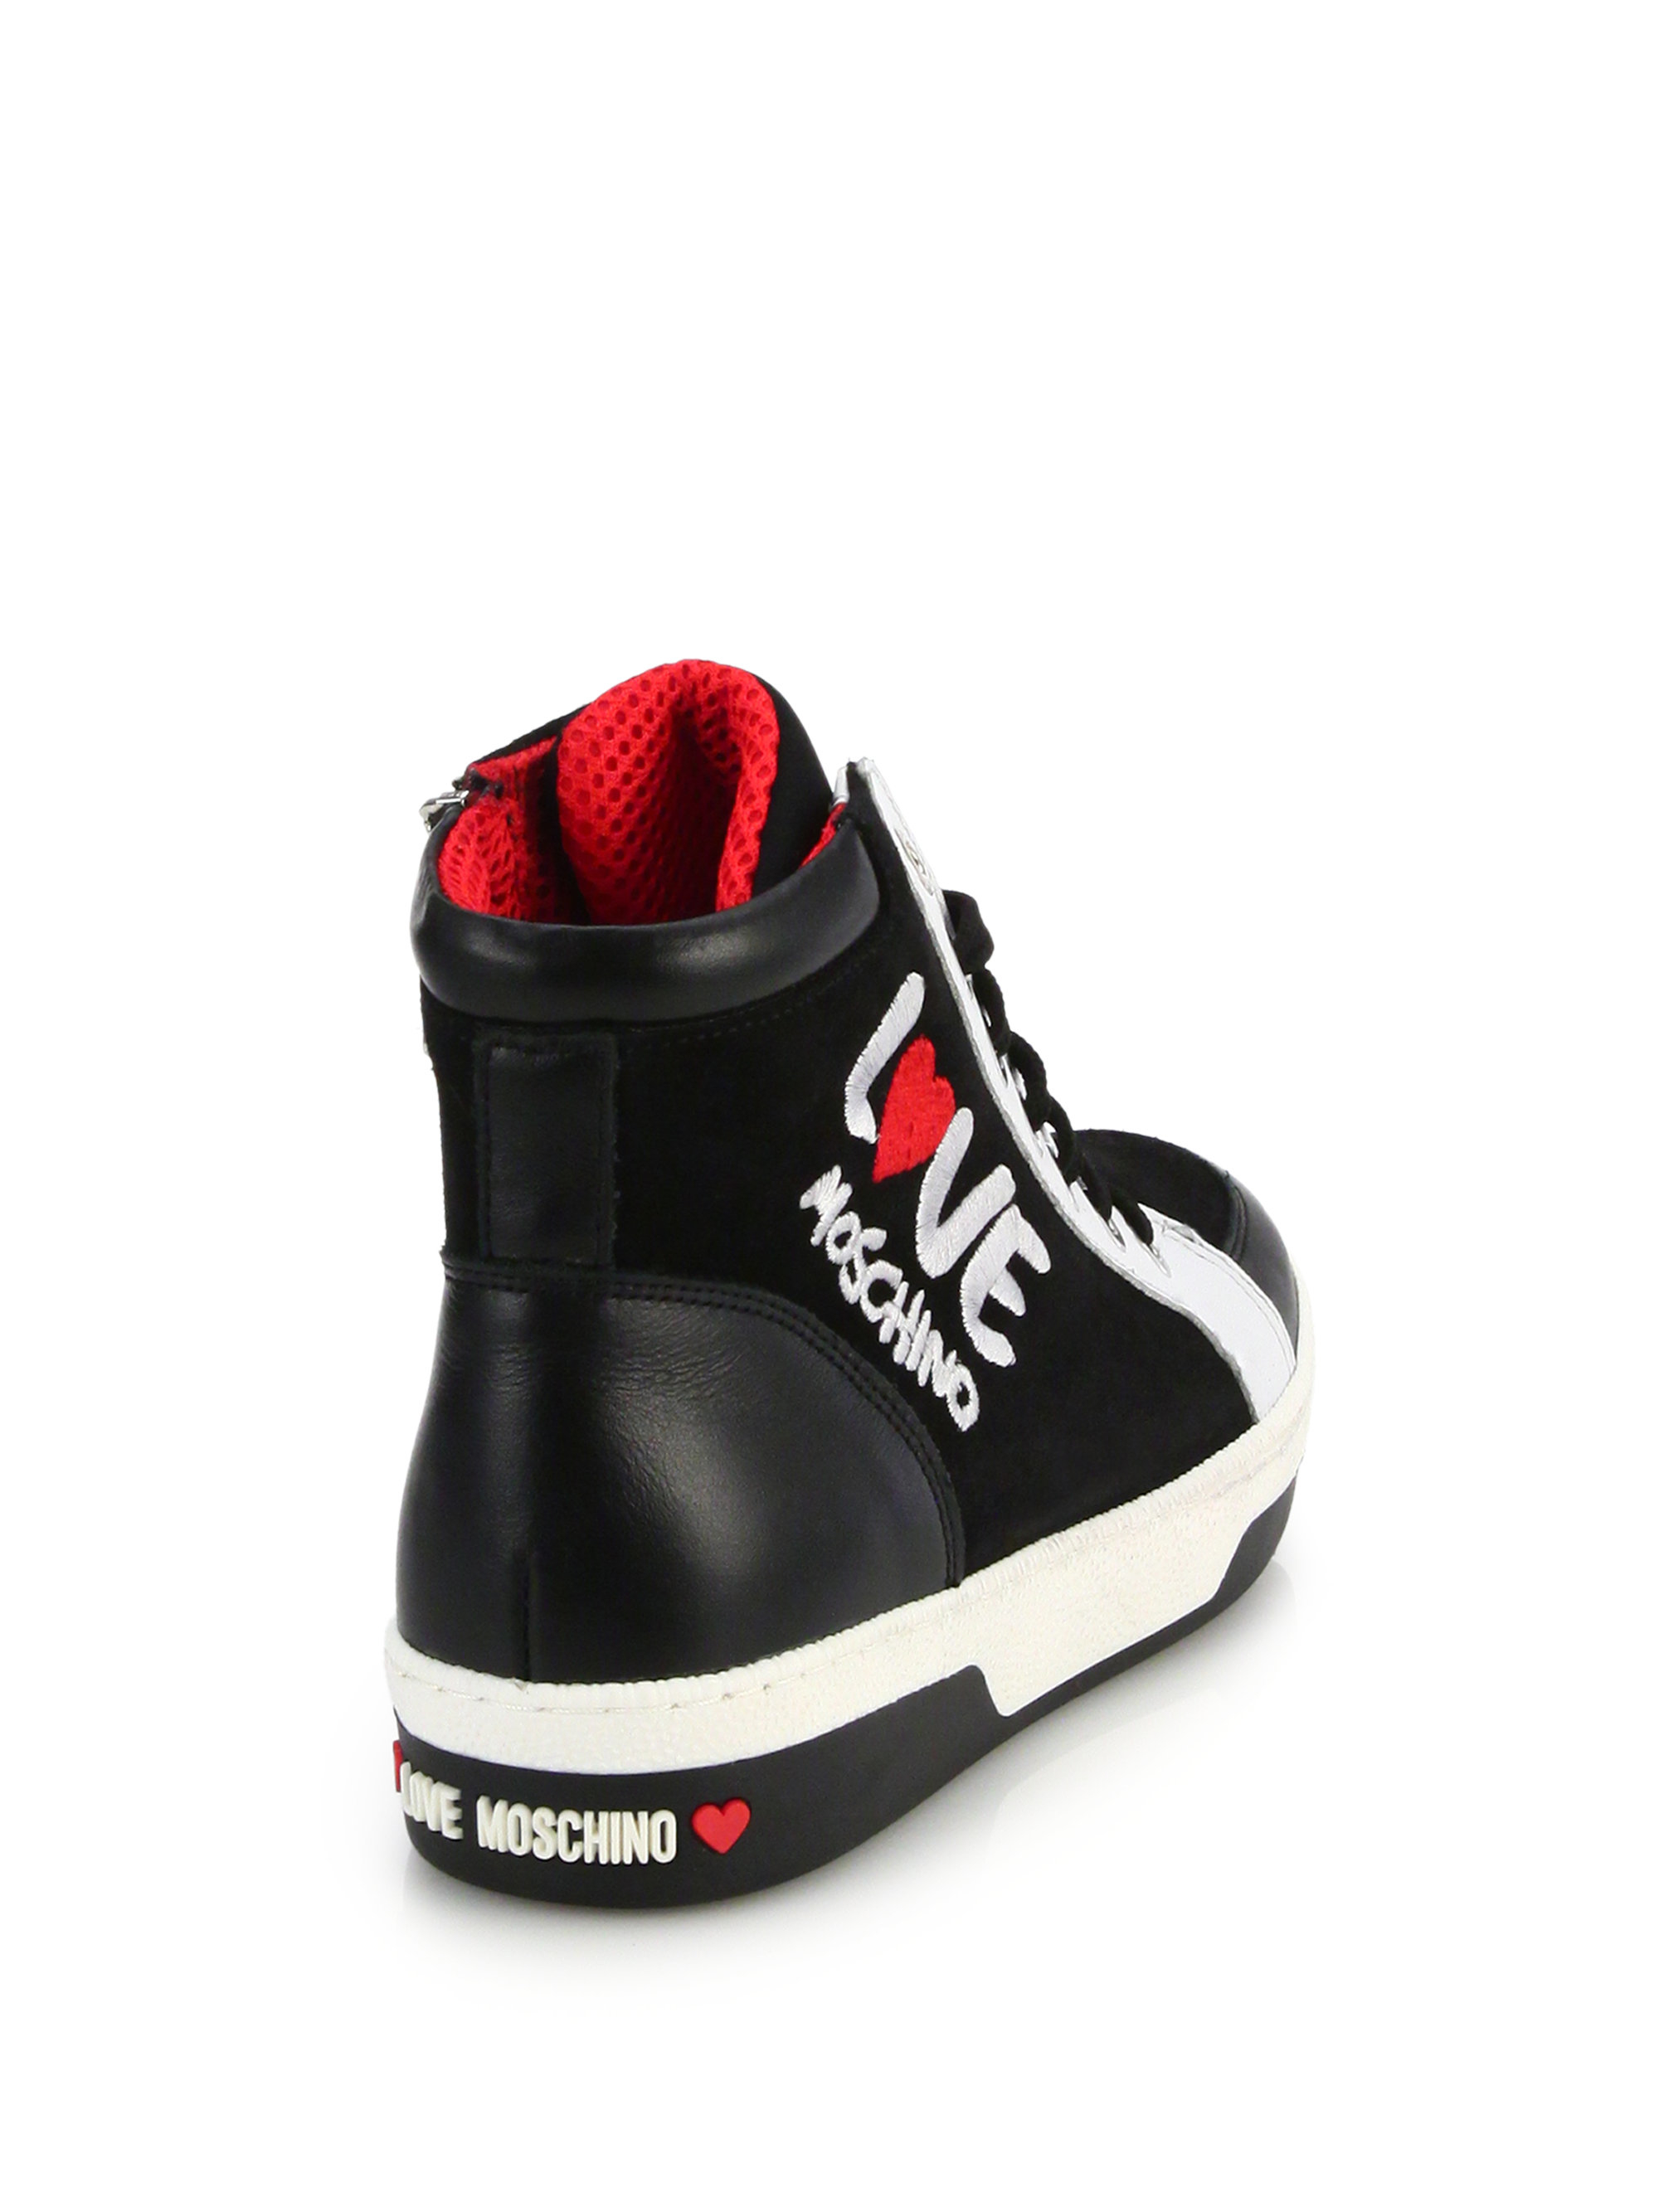 2d4950a9abd Love Moschino Love Embroidered Leather & Nylon High-top Sneakers in ...